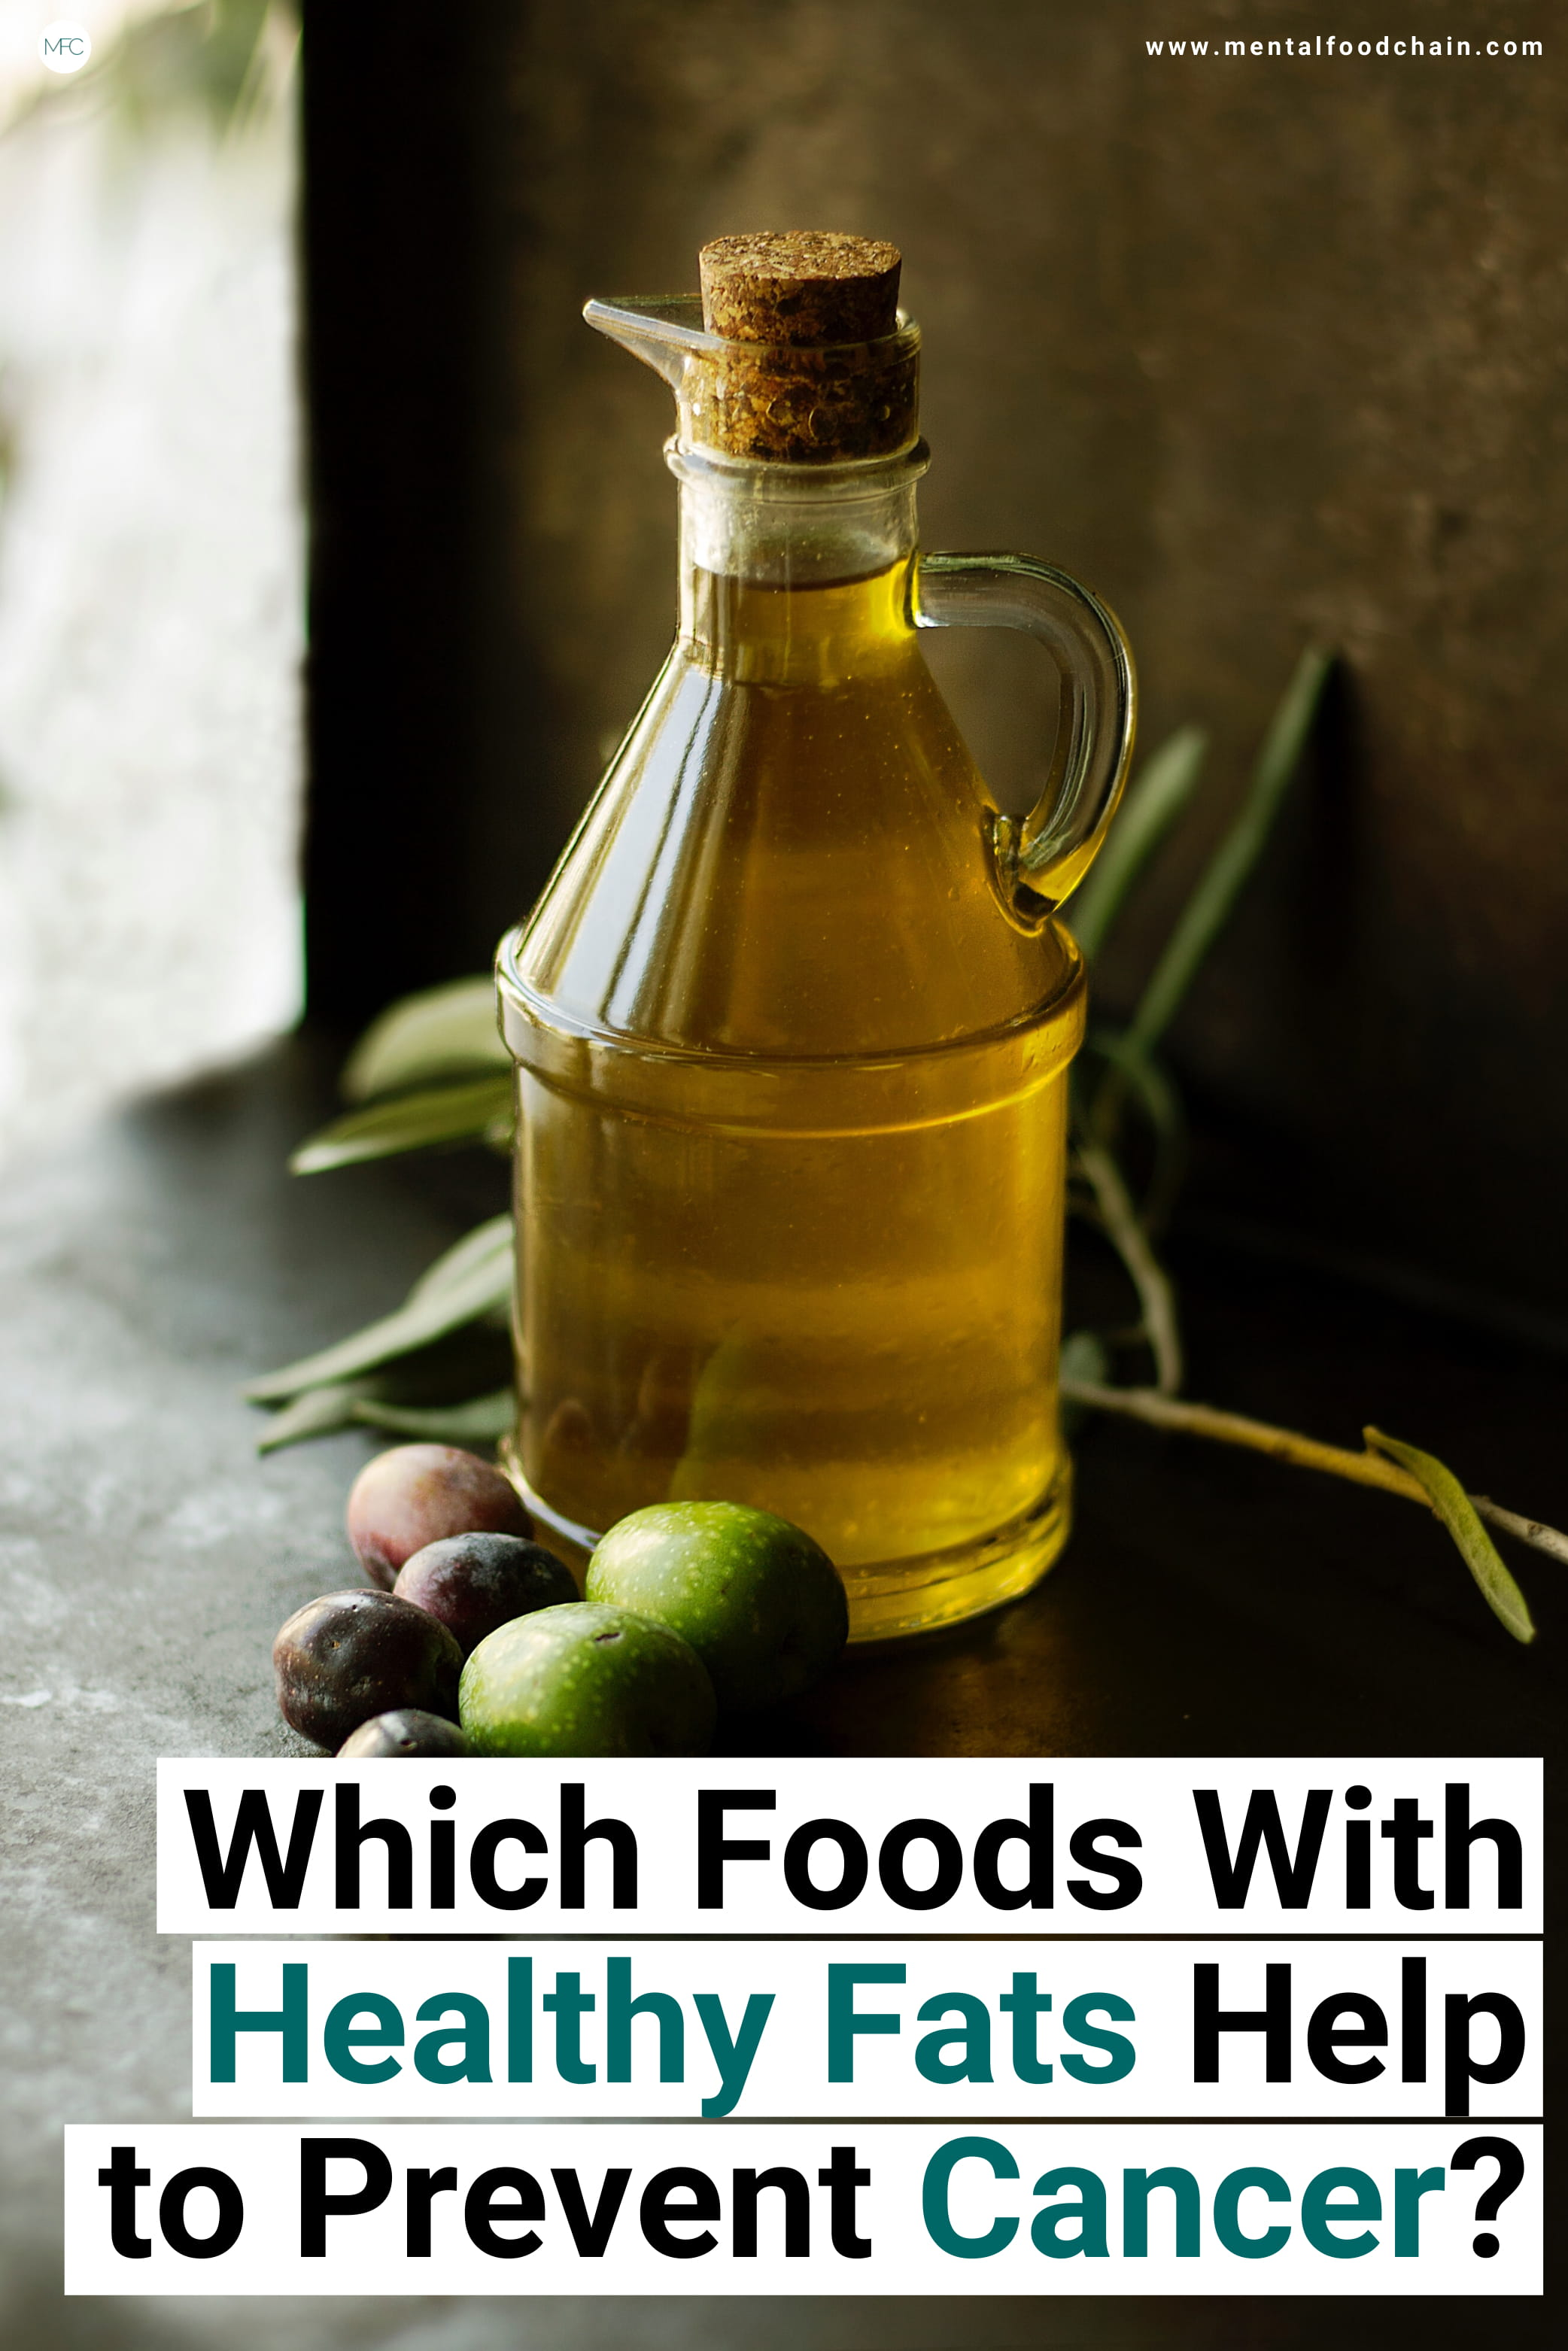 How foods with healthy fats help to prevent cancer